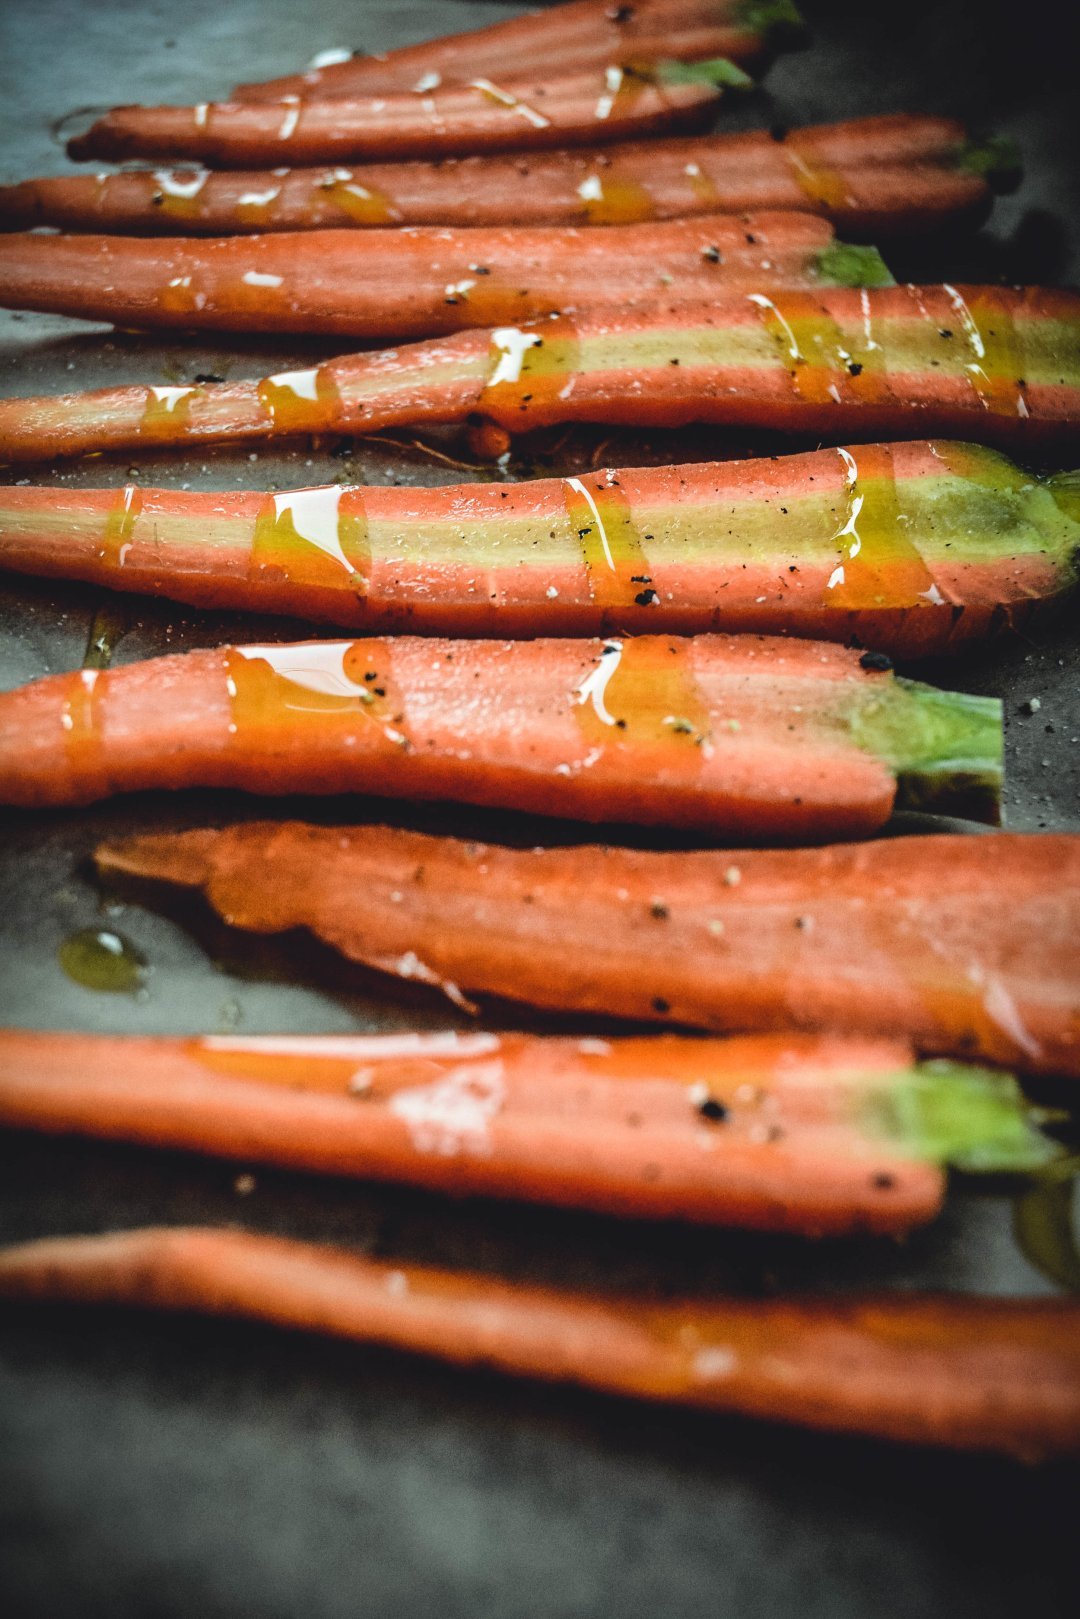 carrots sliced on tray drizzled with olive oil